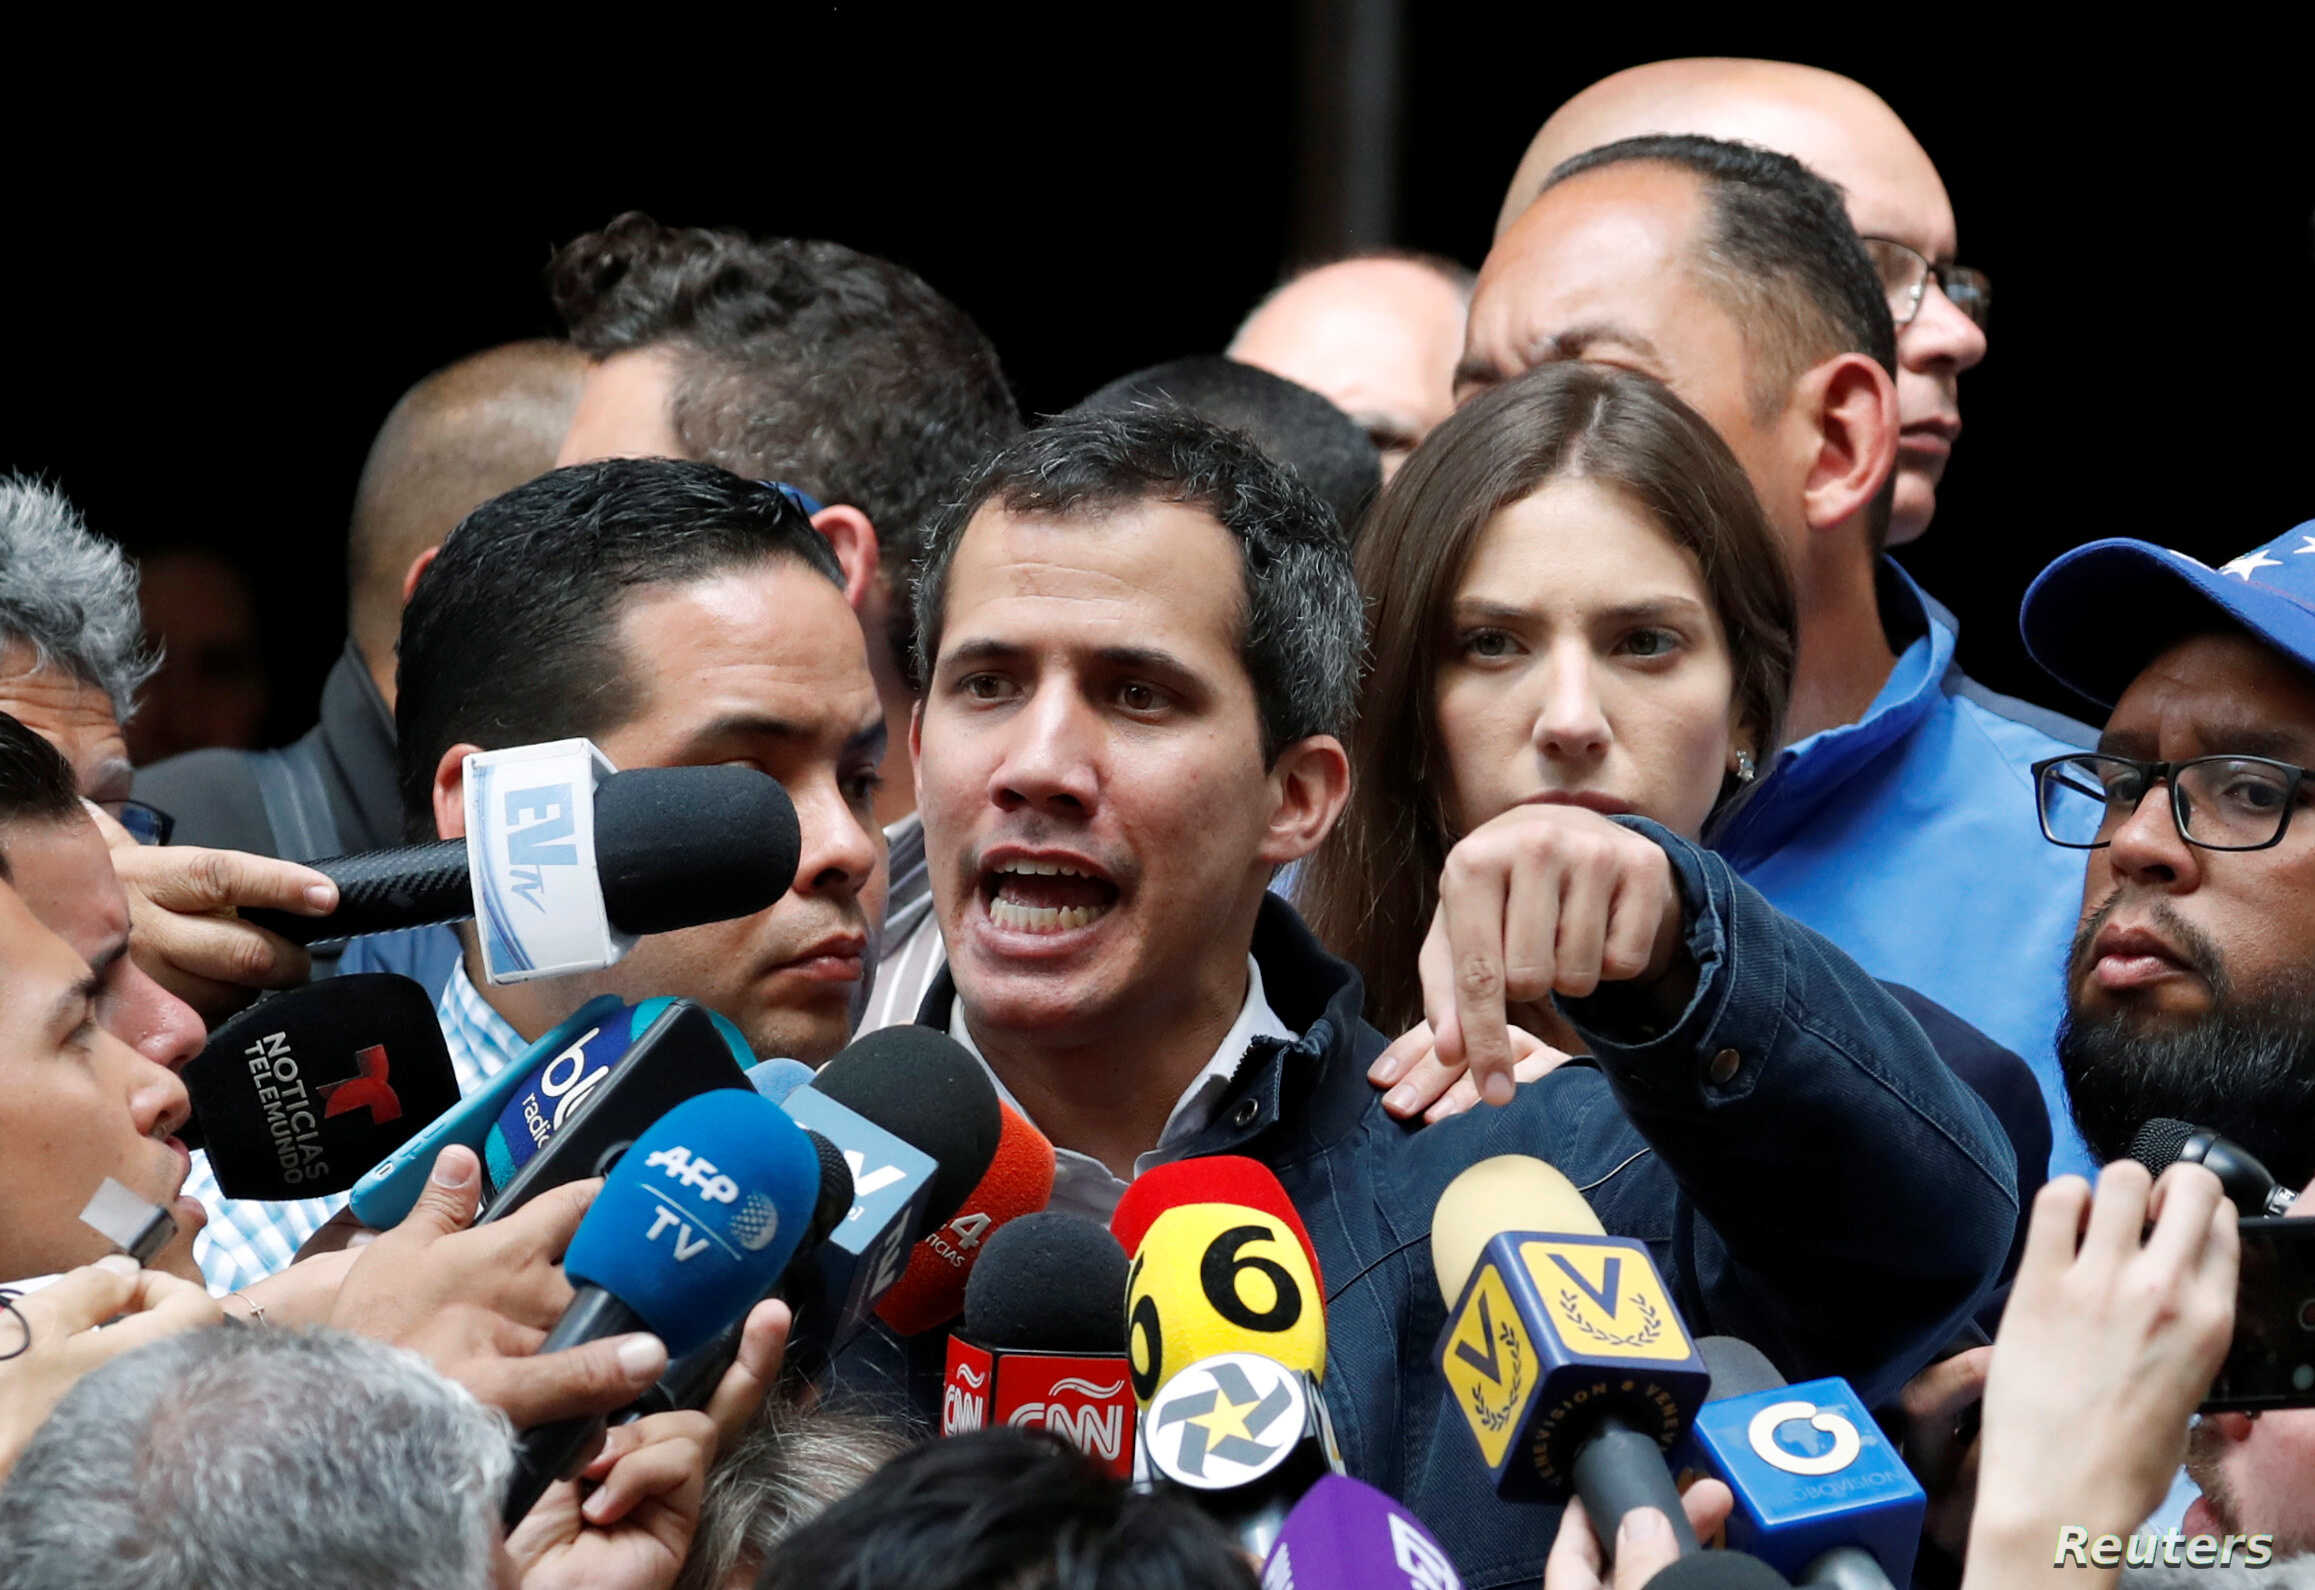 Venezuelan opposition leader and self-proclaimed interim president Juan Guaido, accompanied by his wife Fabiana Rosales, speaks to the media after a church service in Caracas, Venezuela, Jan. 27, 2019.